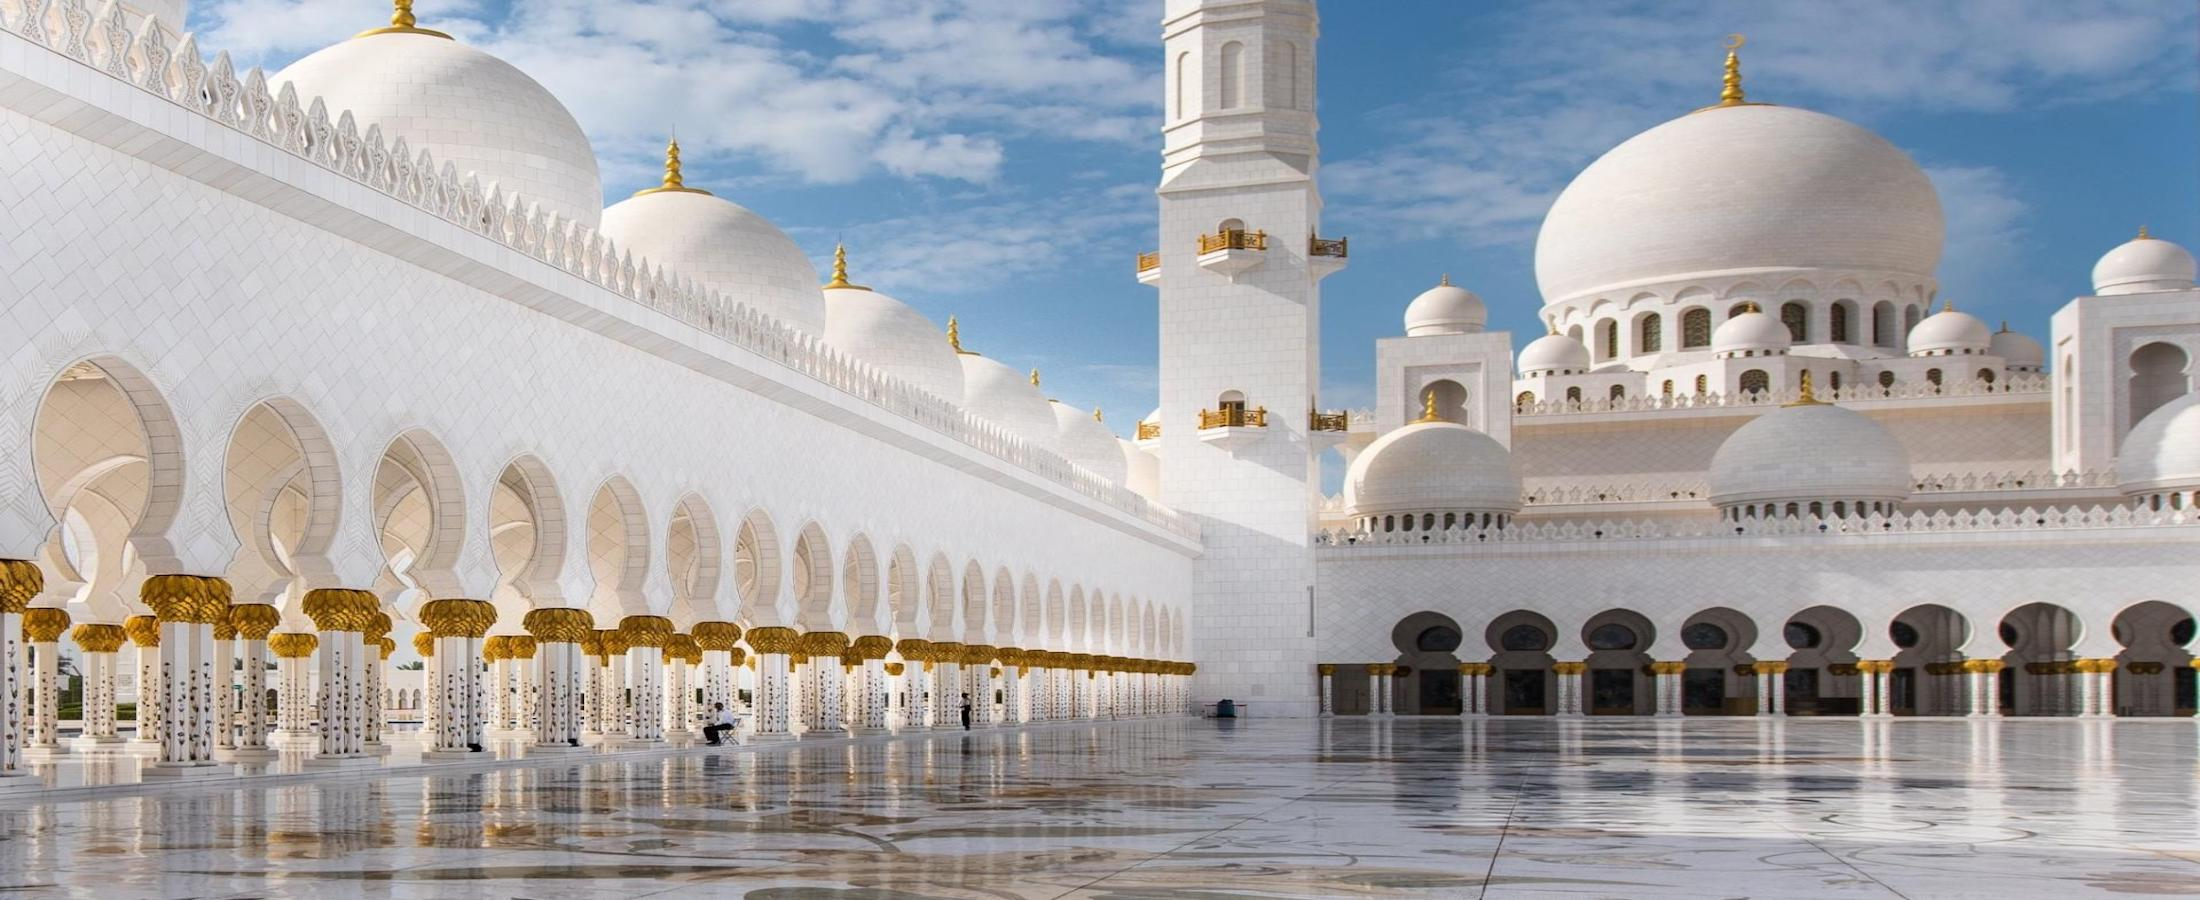 abu-dhabi-sheikh-zayed-mosque-hd-wallpapers-76444-1377561.png